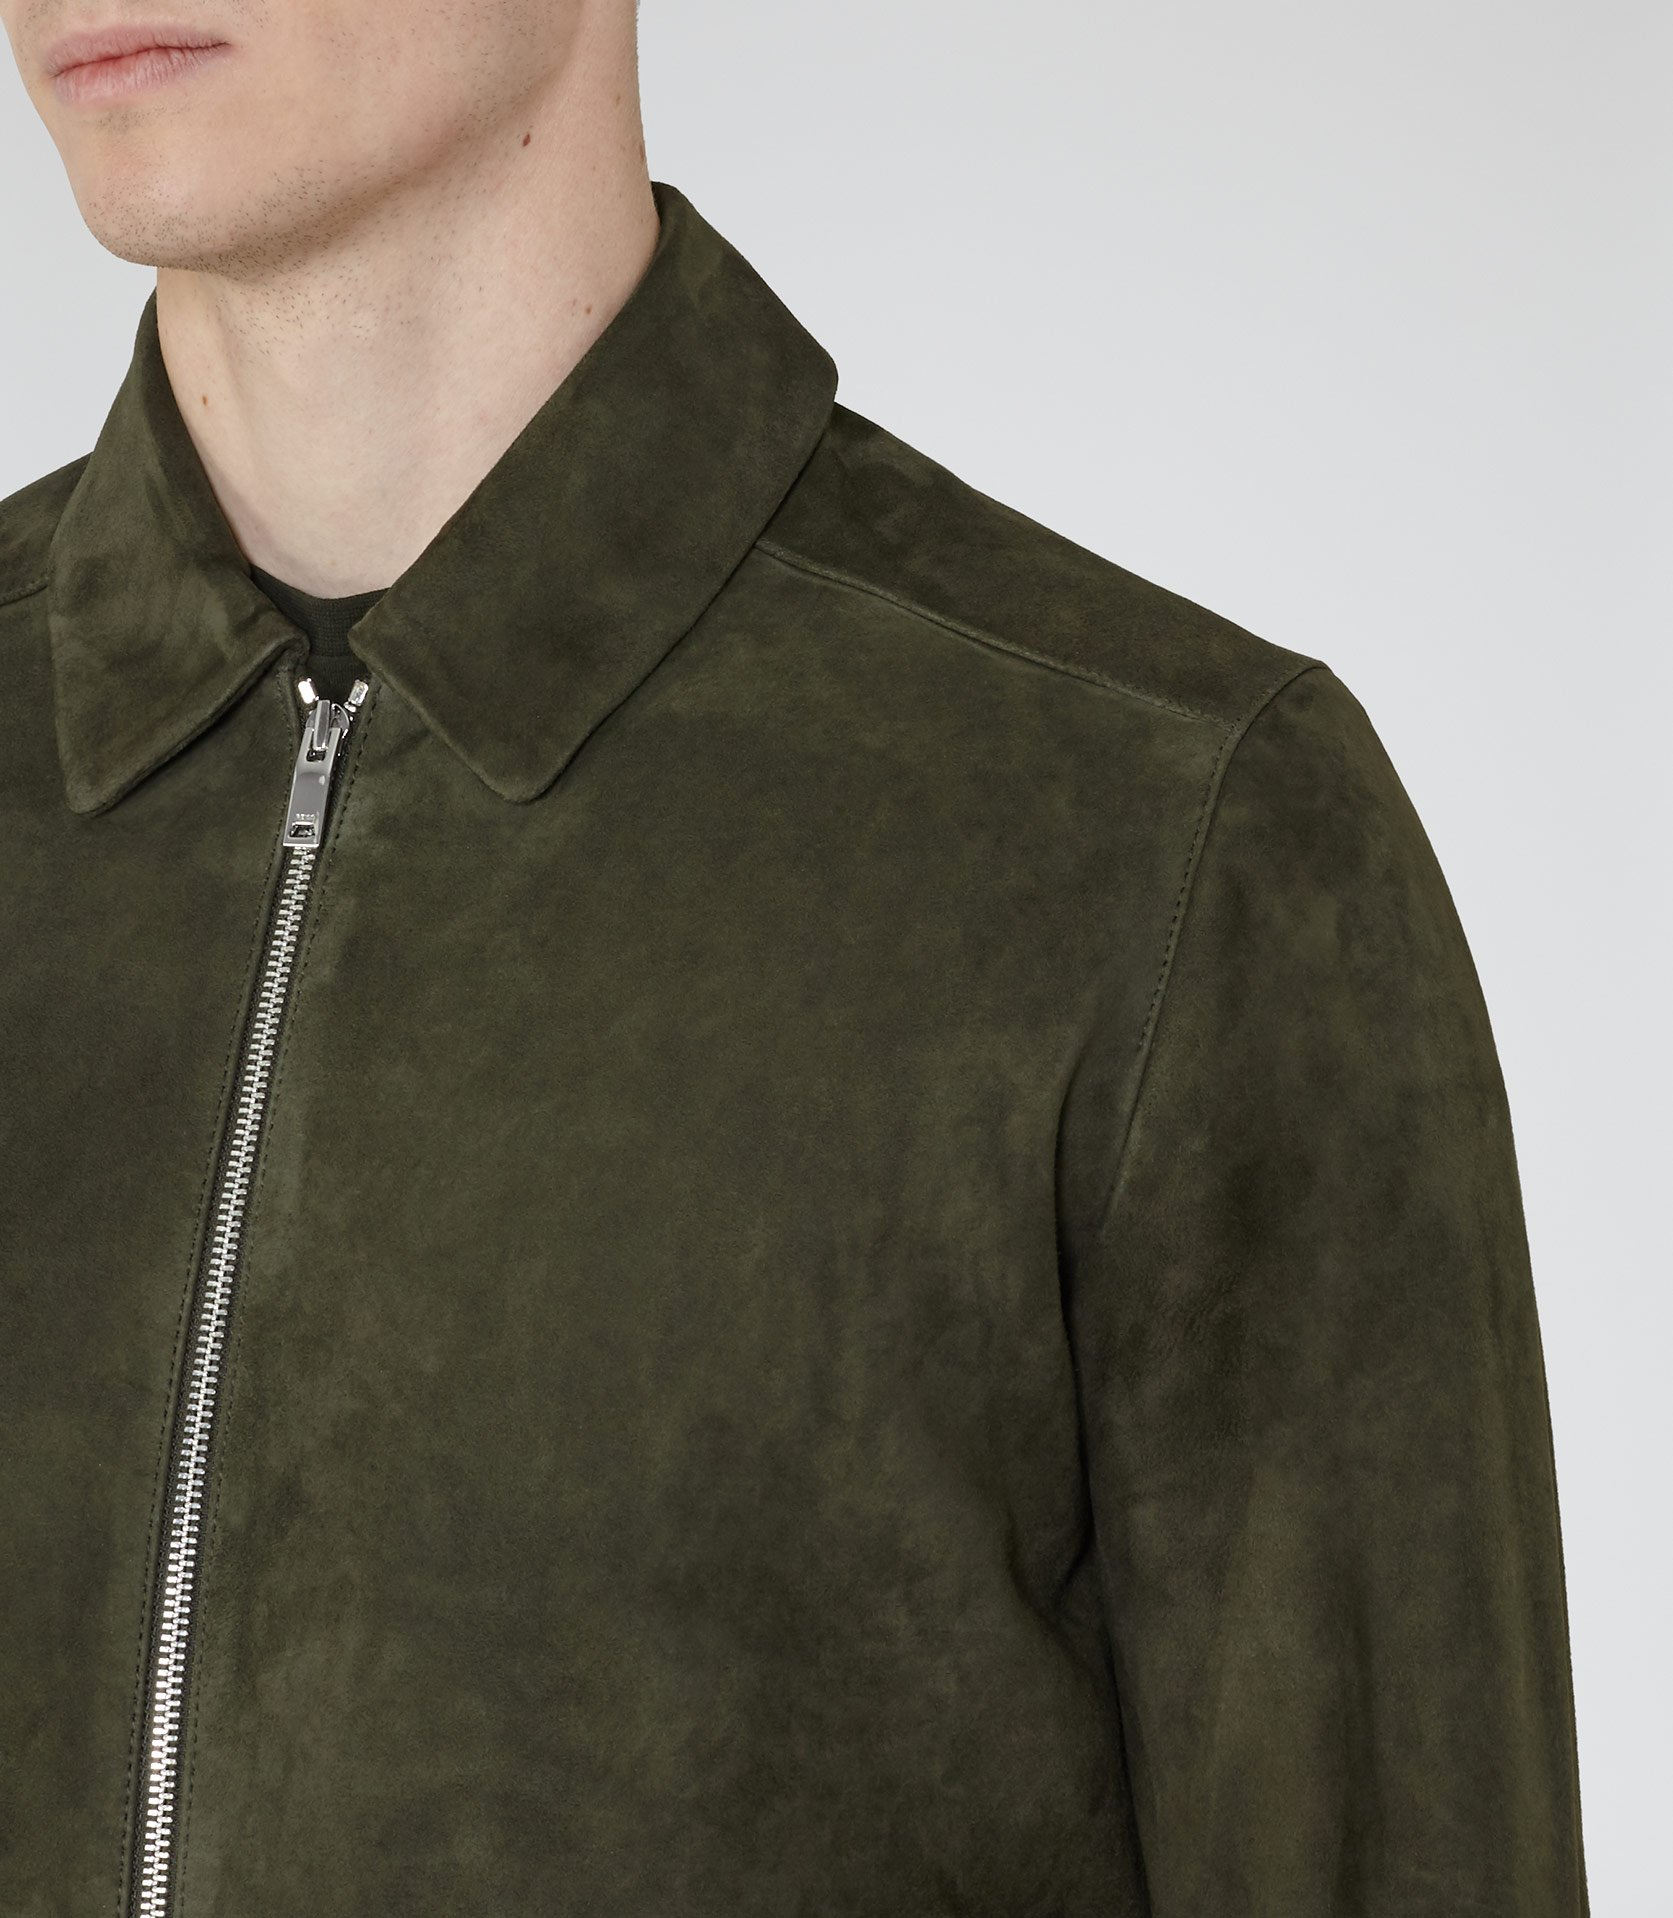 e1ea2ebcc Holt Suede Collared Jacket by Reiss